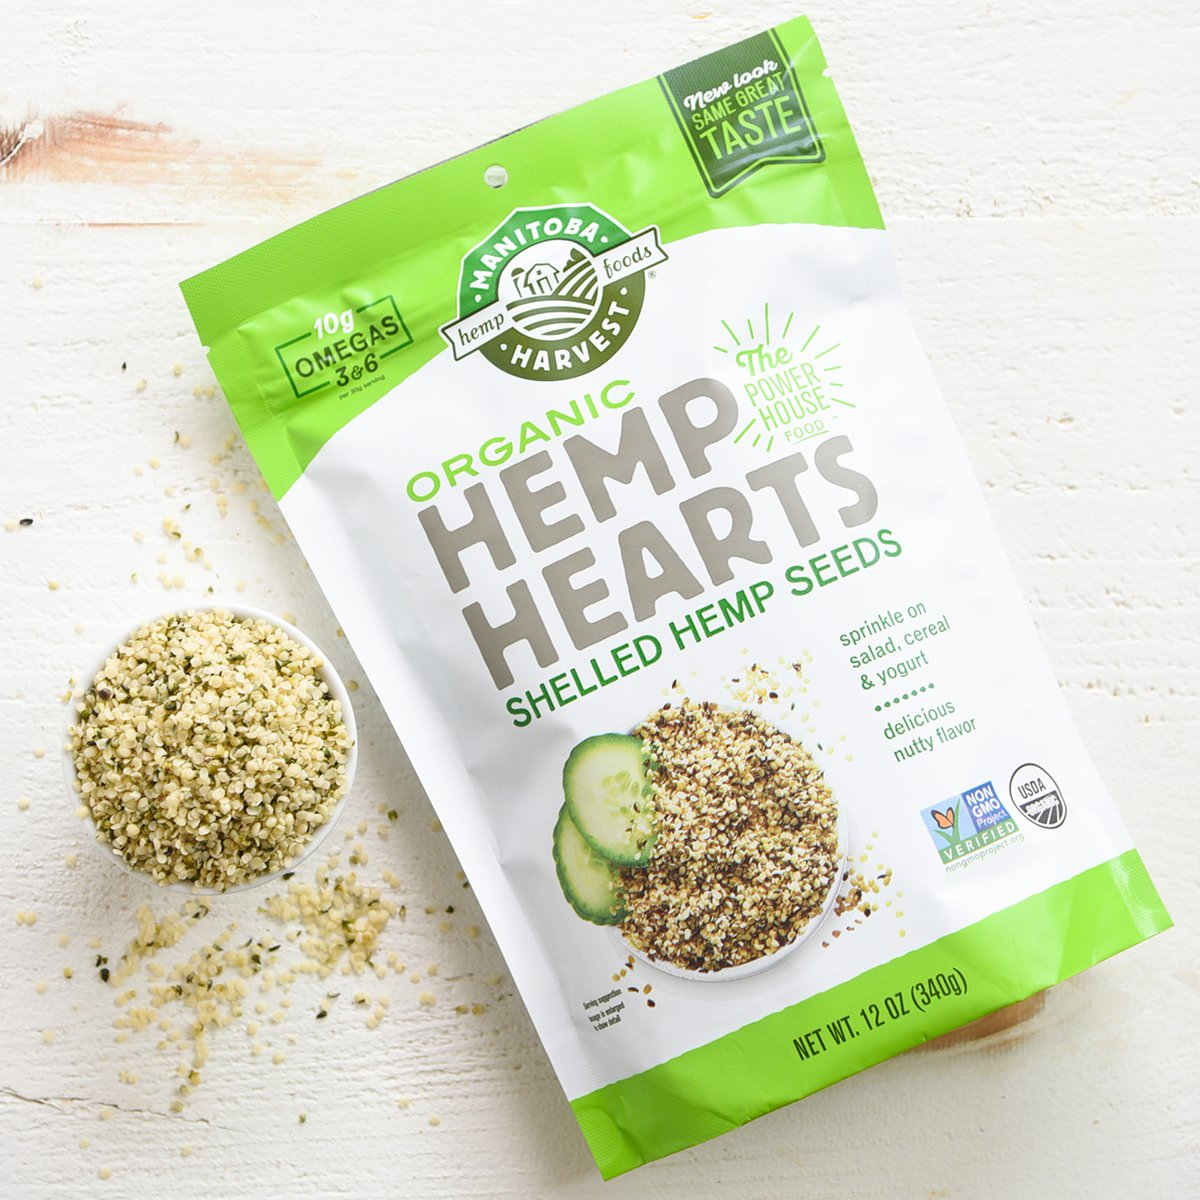 Manitoba Harvest Organic Hemp Hearts Raw Shelled Hemp Seeds, 5lb; with 10g Protein & 12g Omegas per Serving, Non-GMO, Gluten Free by Manitoba Harvest (Image #7)